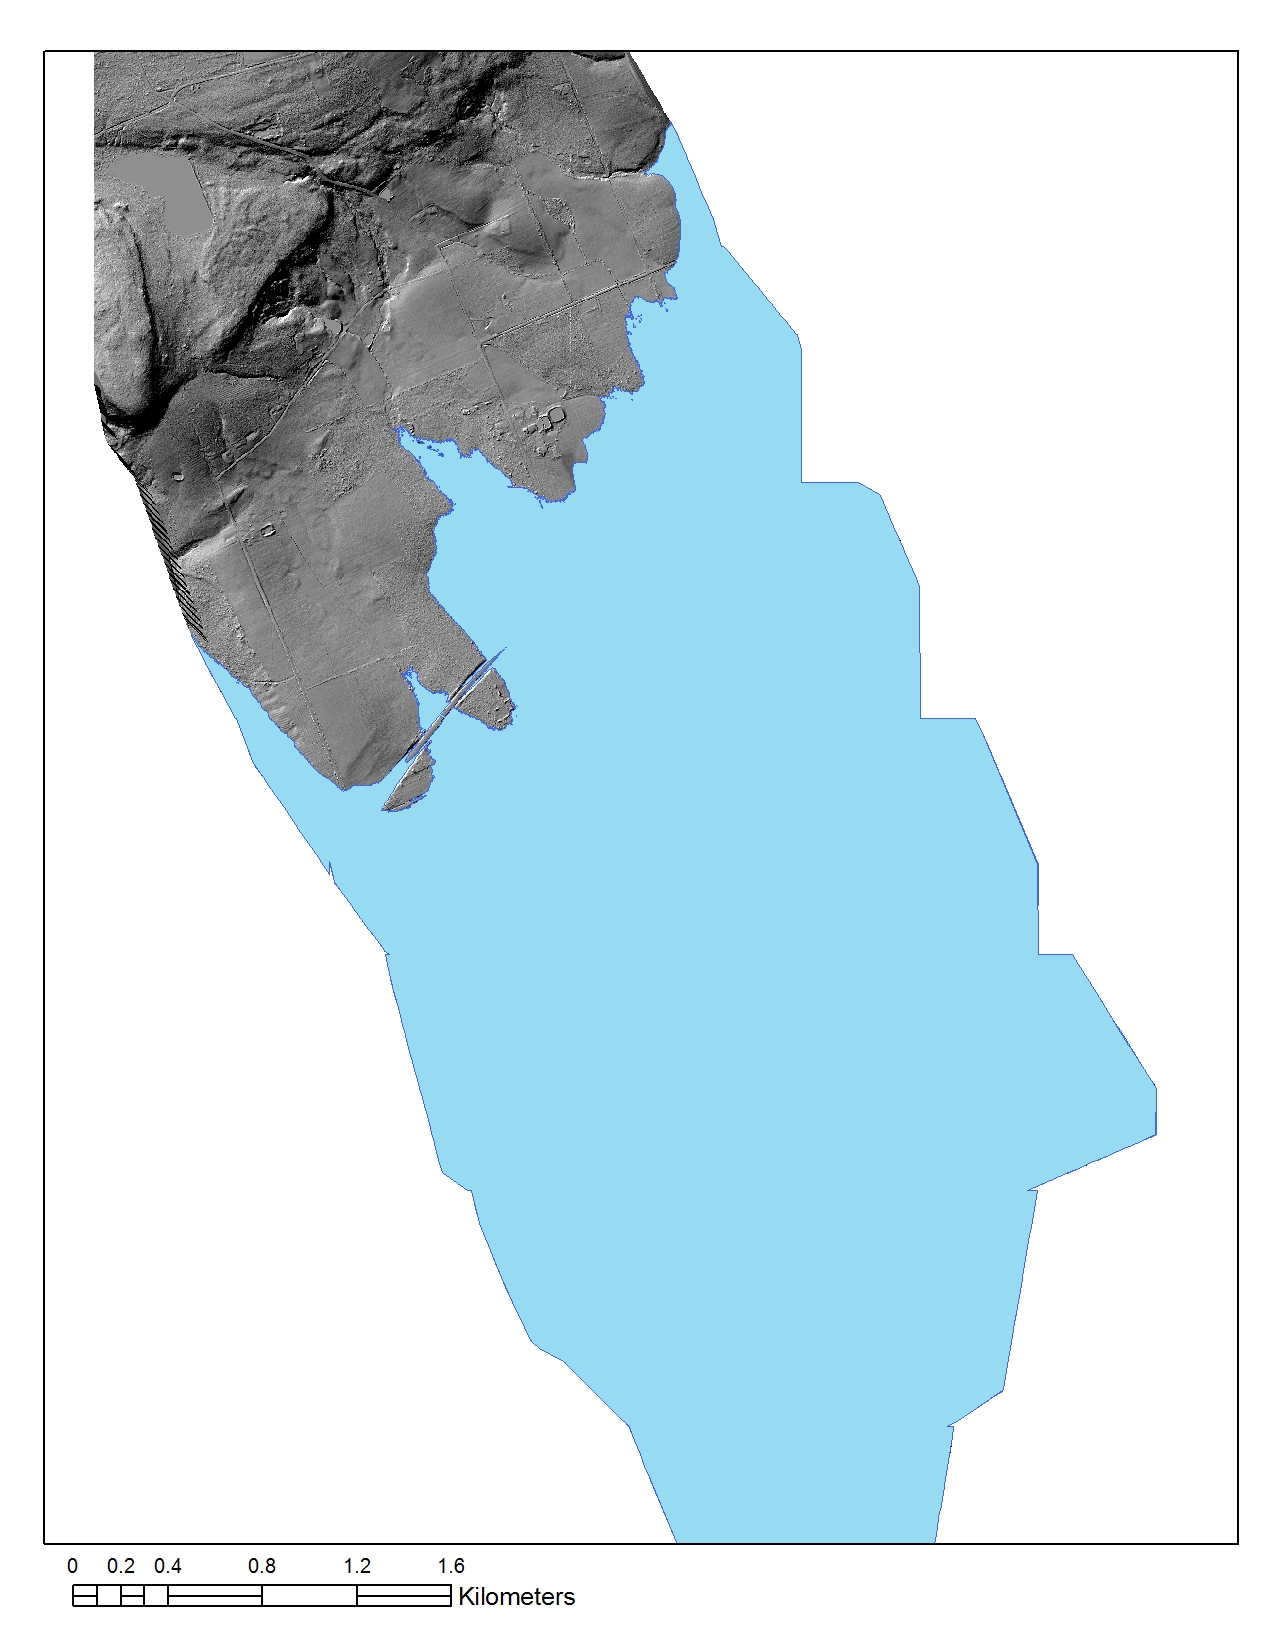 ArcGIS : Hydrologic Flattening, Watershed Delineation and Flood Modelling